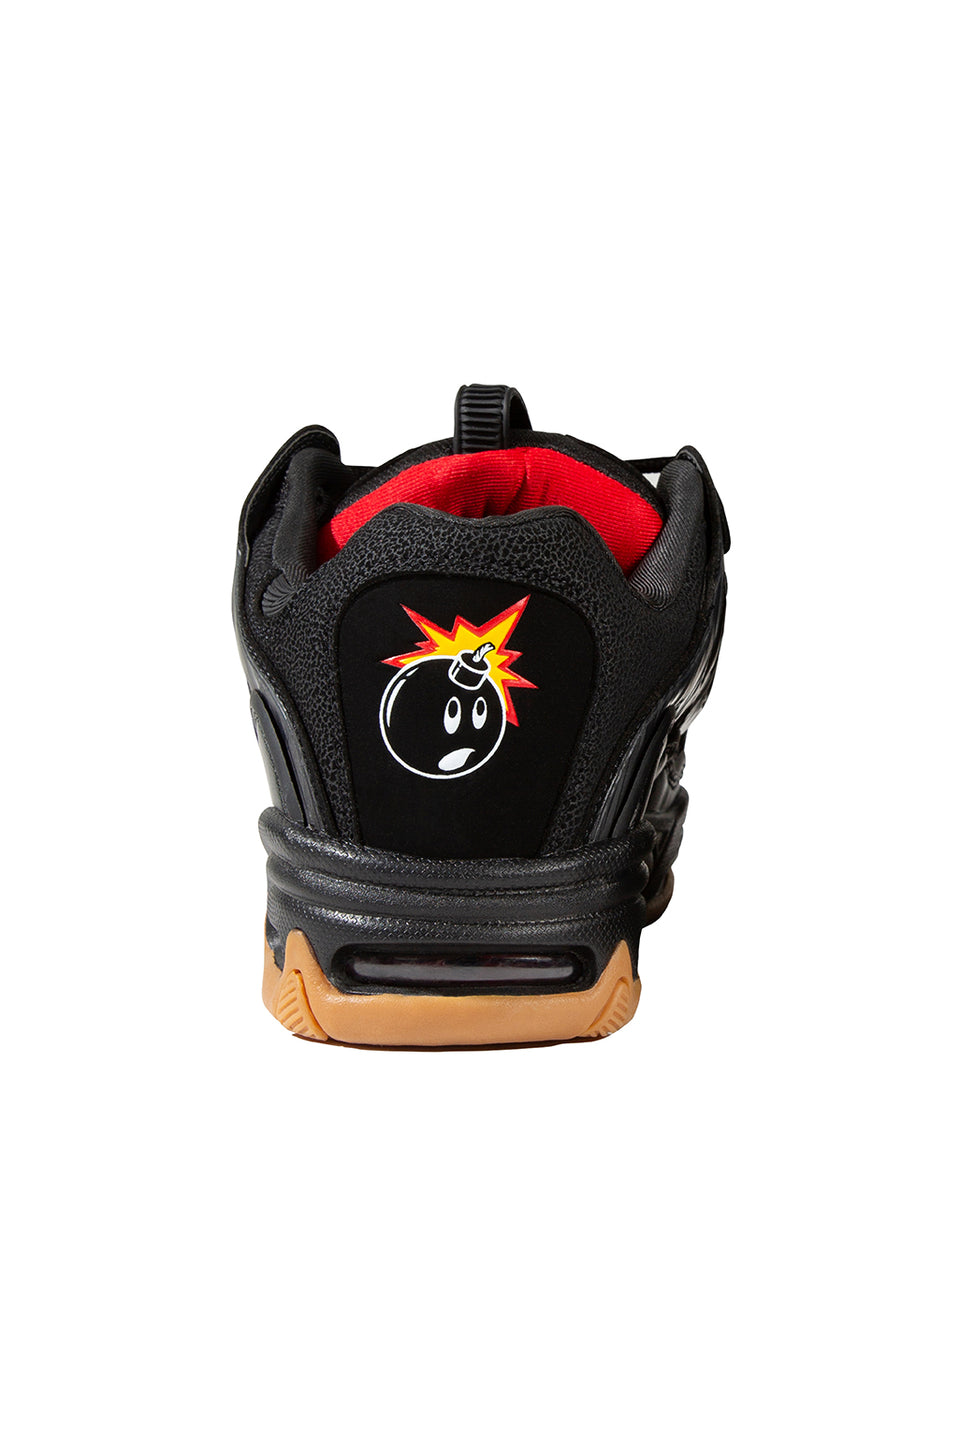 The Hundreds X Osiris D3 2001